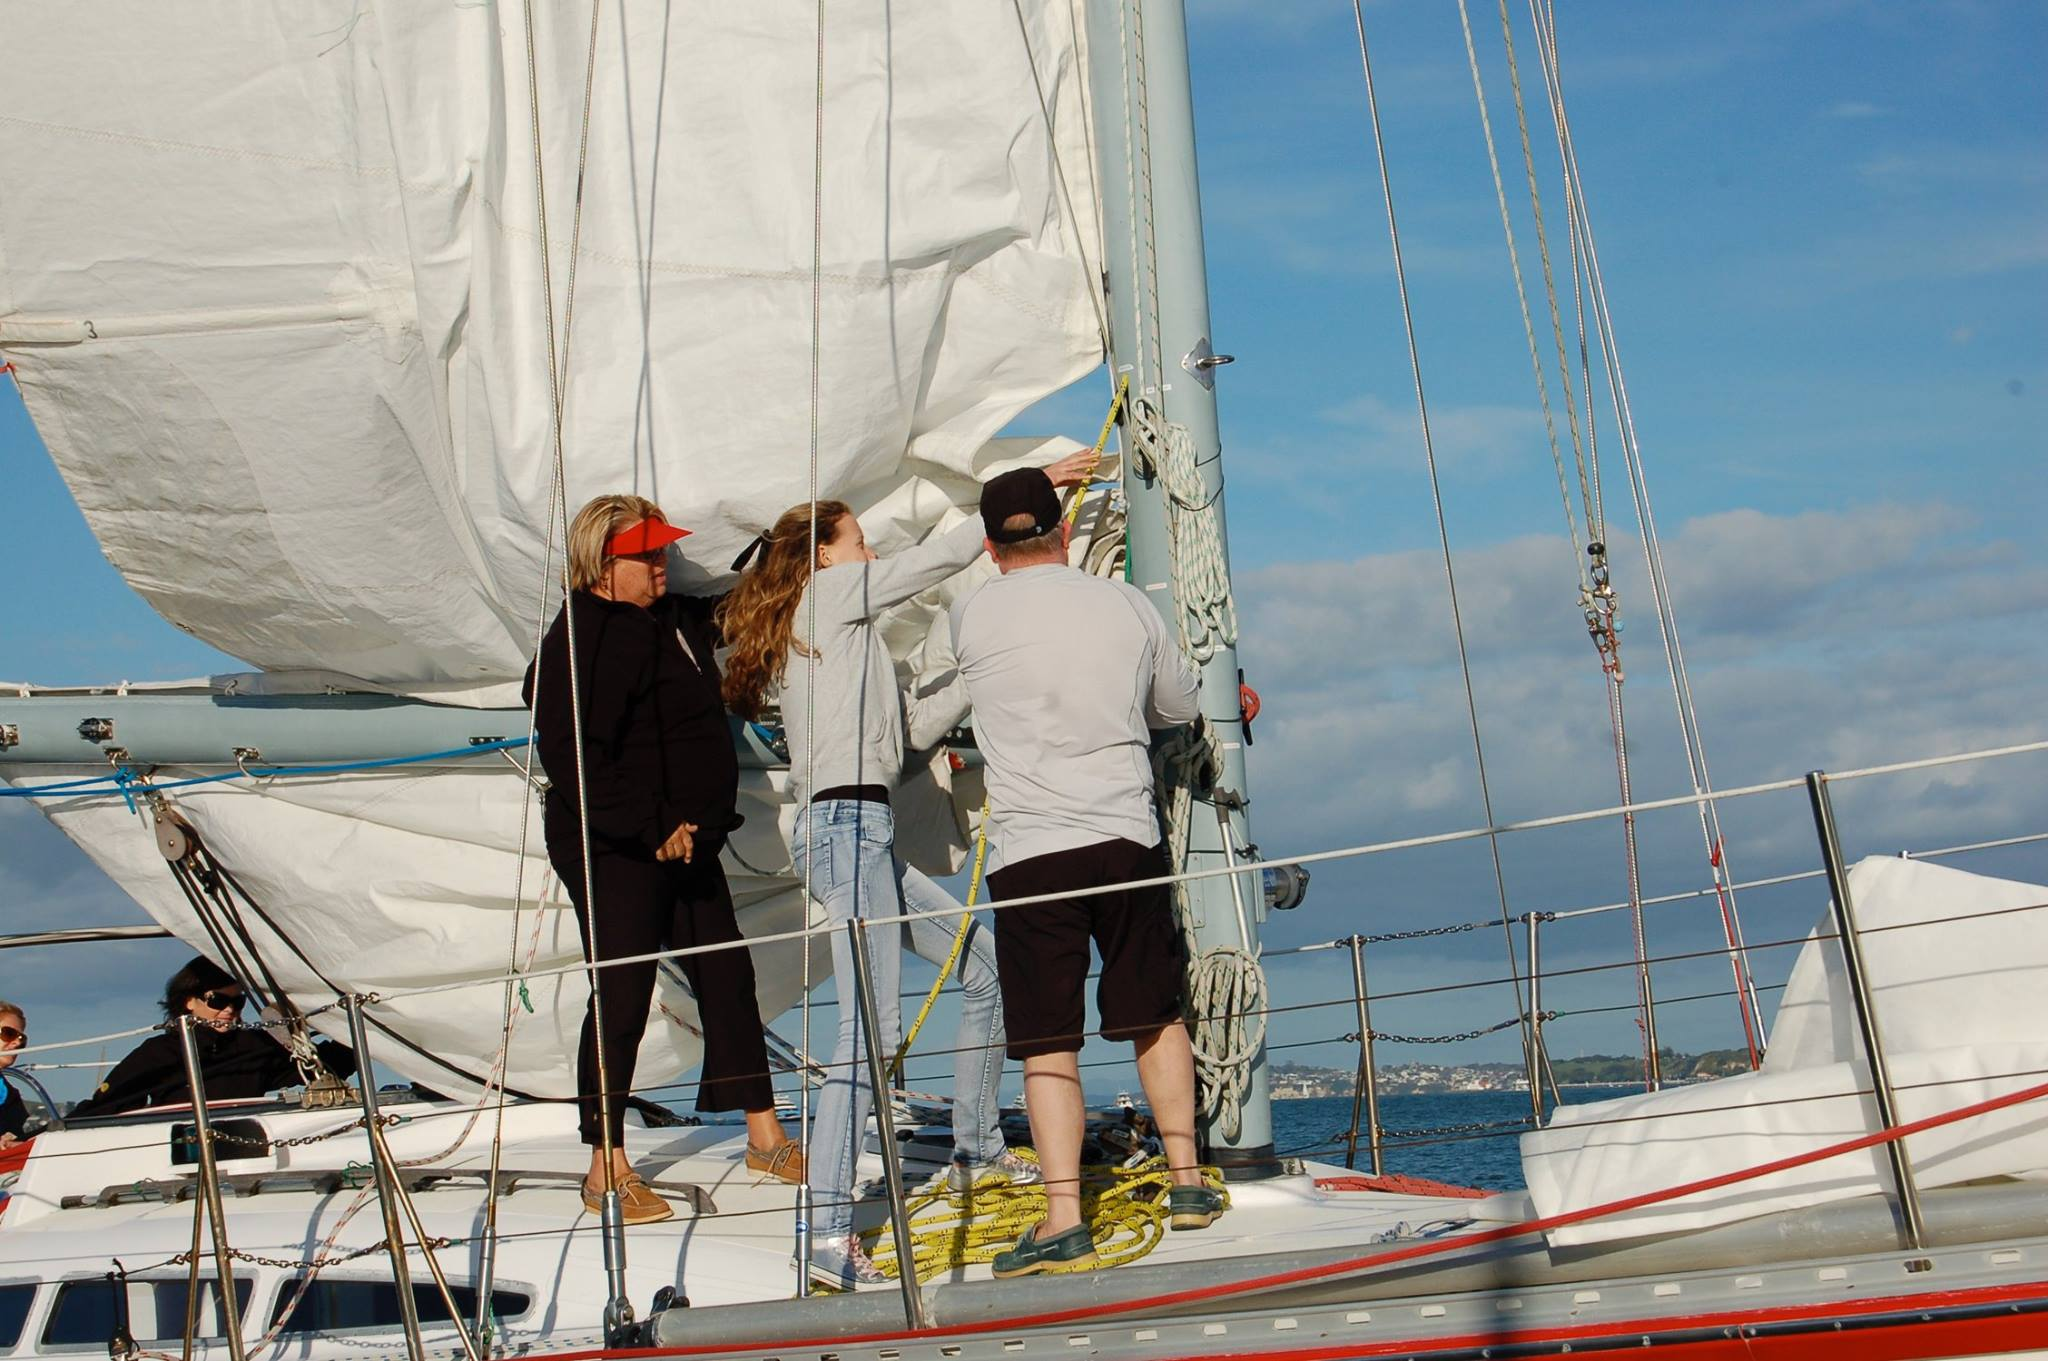 penny whiting sailing school I.jpg